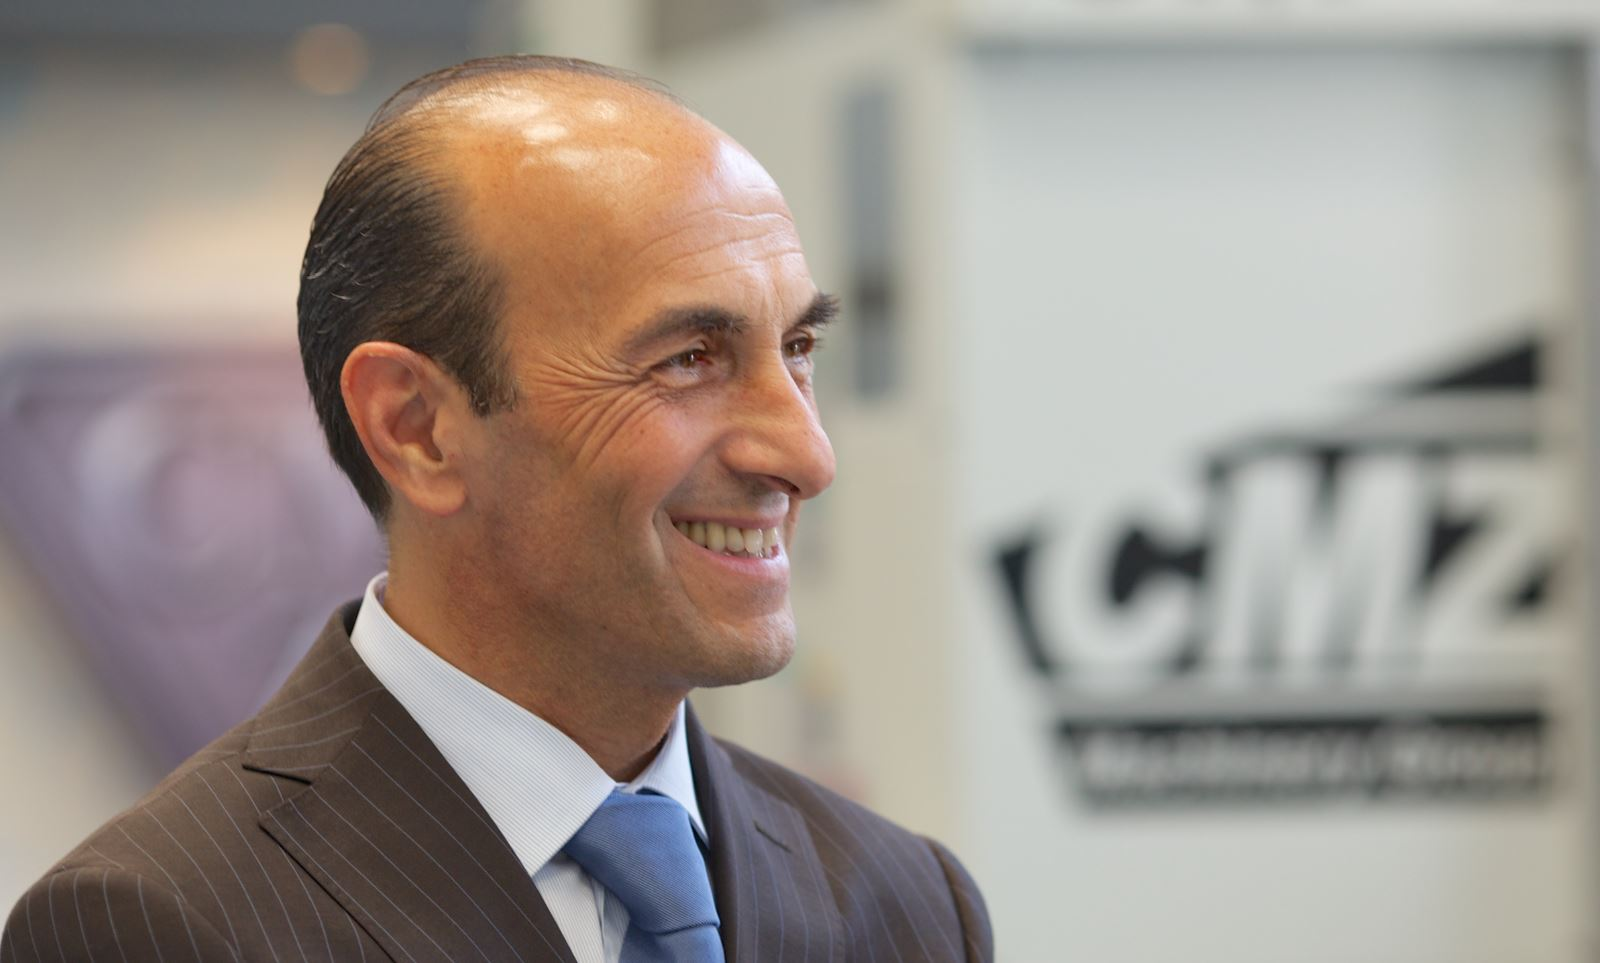 Paolo Paccagnini